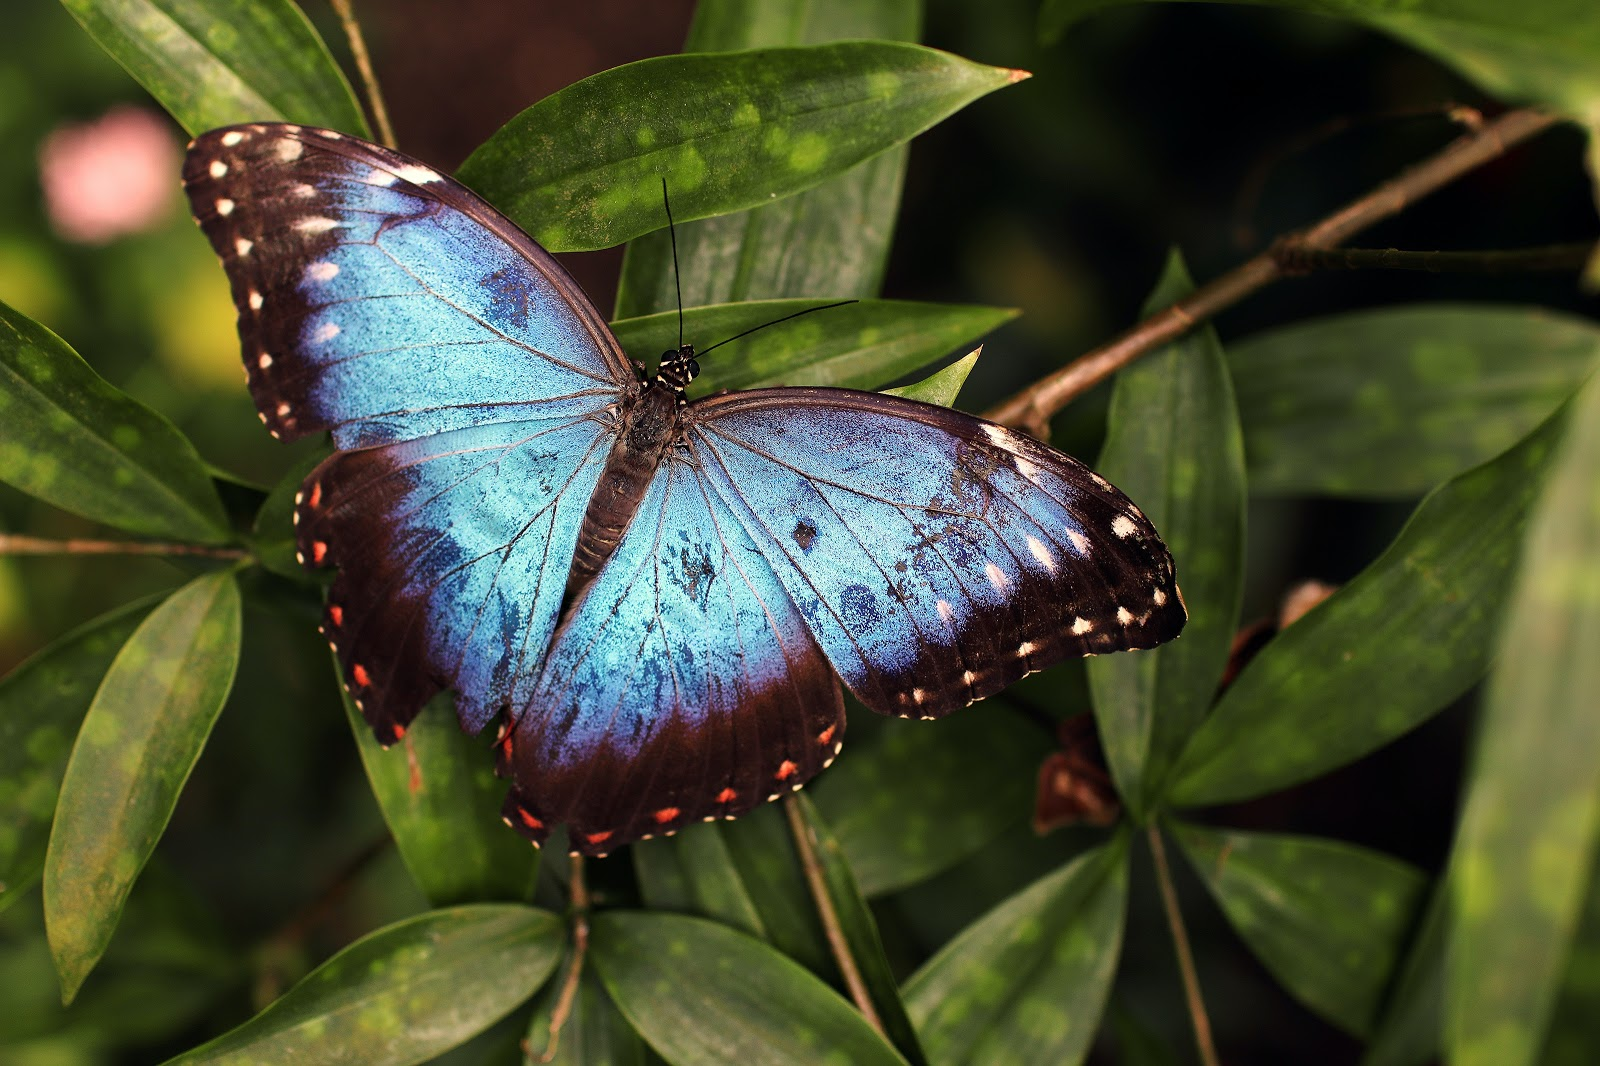 blue-and-black-butterfly-on-green-leaves-butterfly-pictures